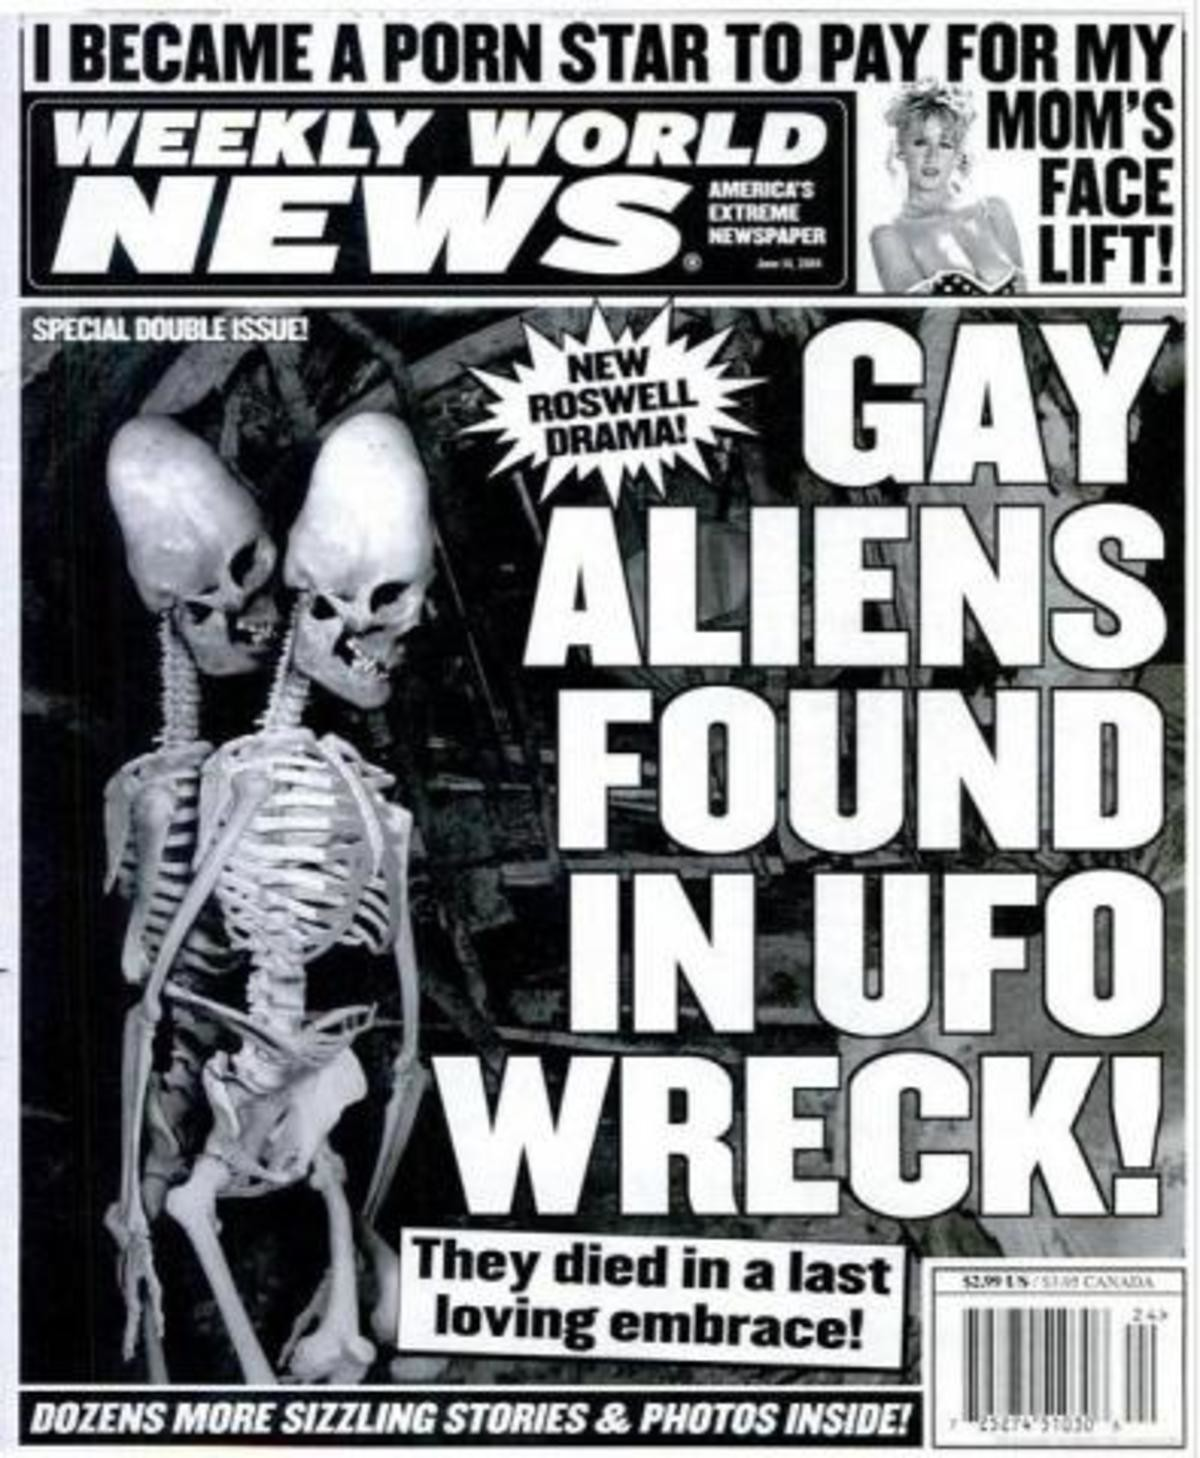 This just in. I kinda really miss the weekly world news. Shoutout to lampmountaindew who made me remember it by mentioning tabloids and their ridiculous stories